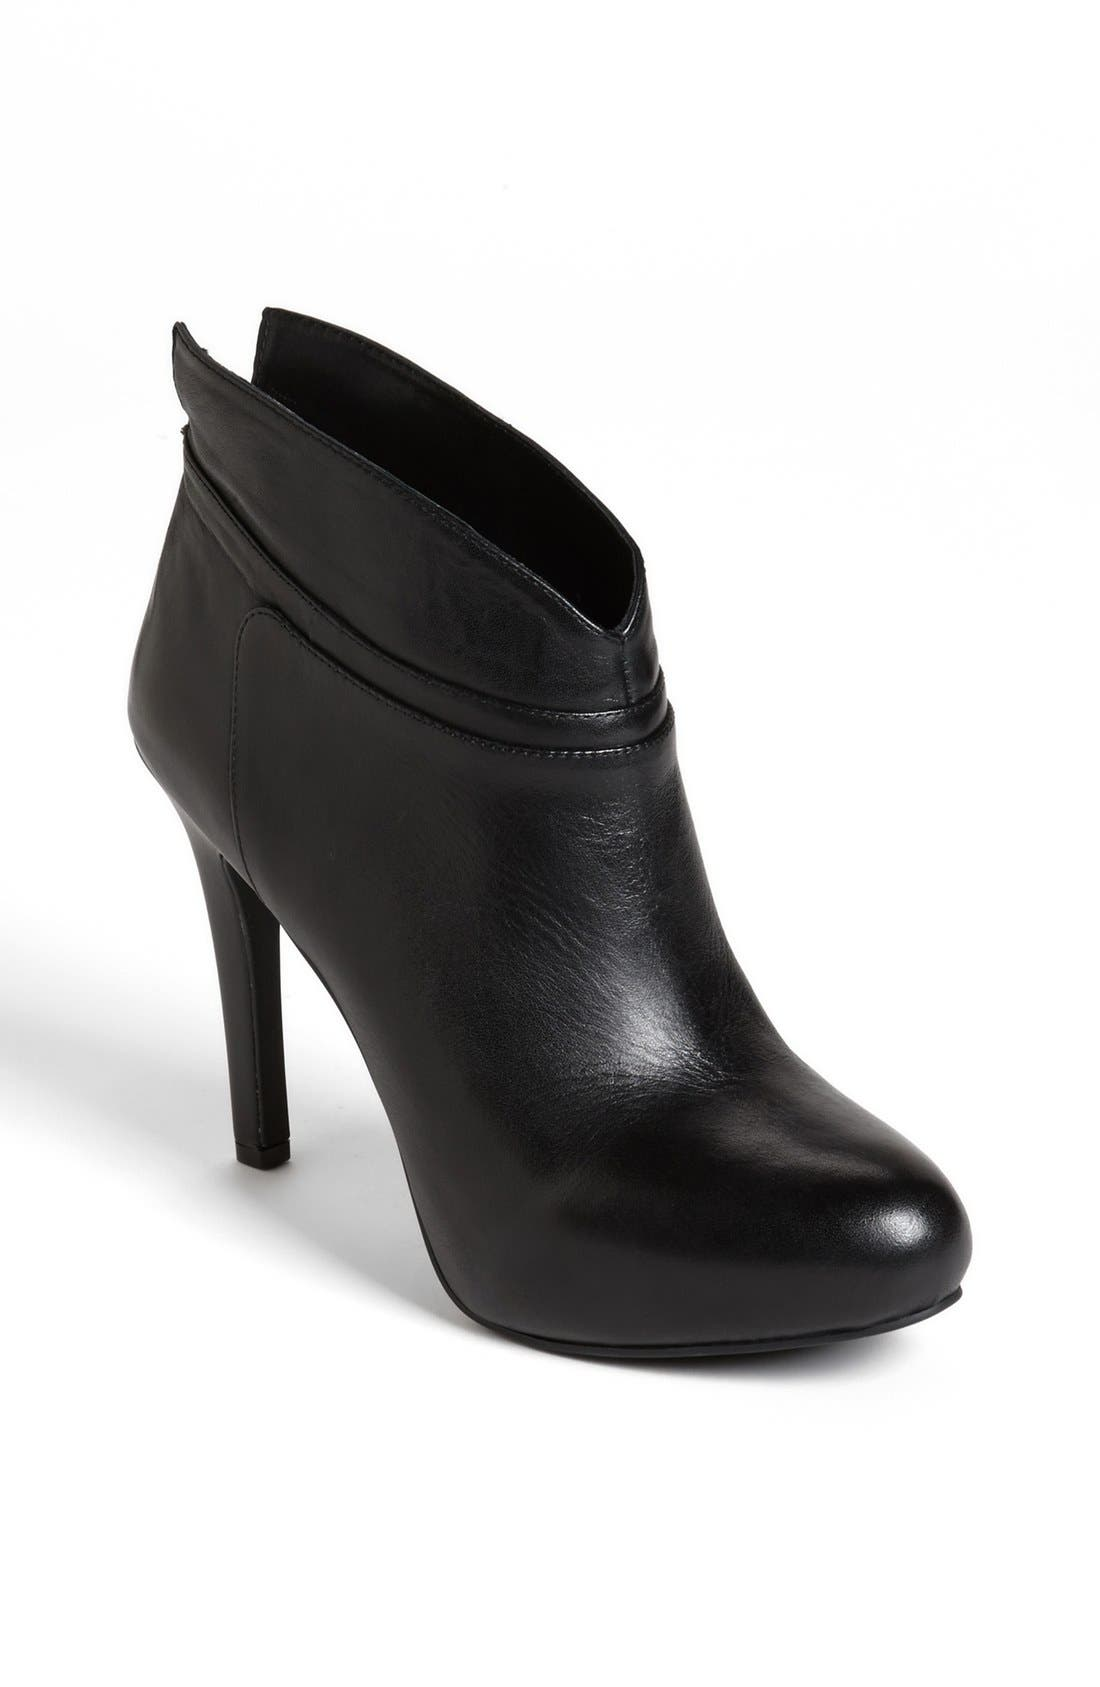 Alternate Image 1 Selected - Jessica Simpson 'Aggie' Boot